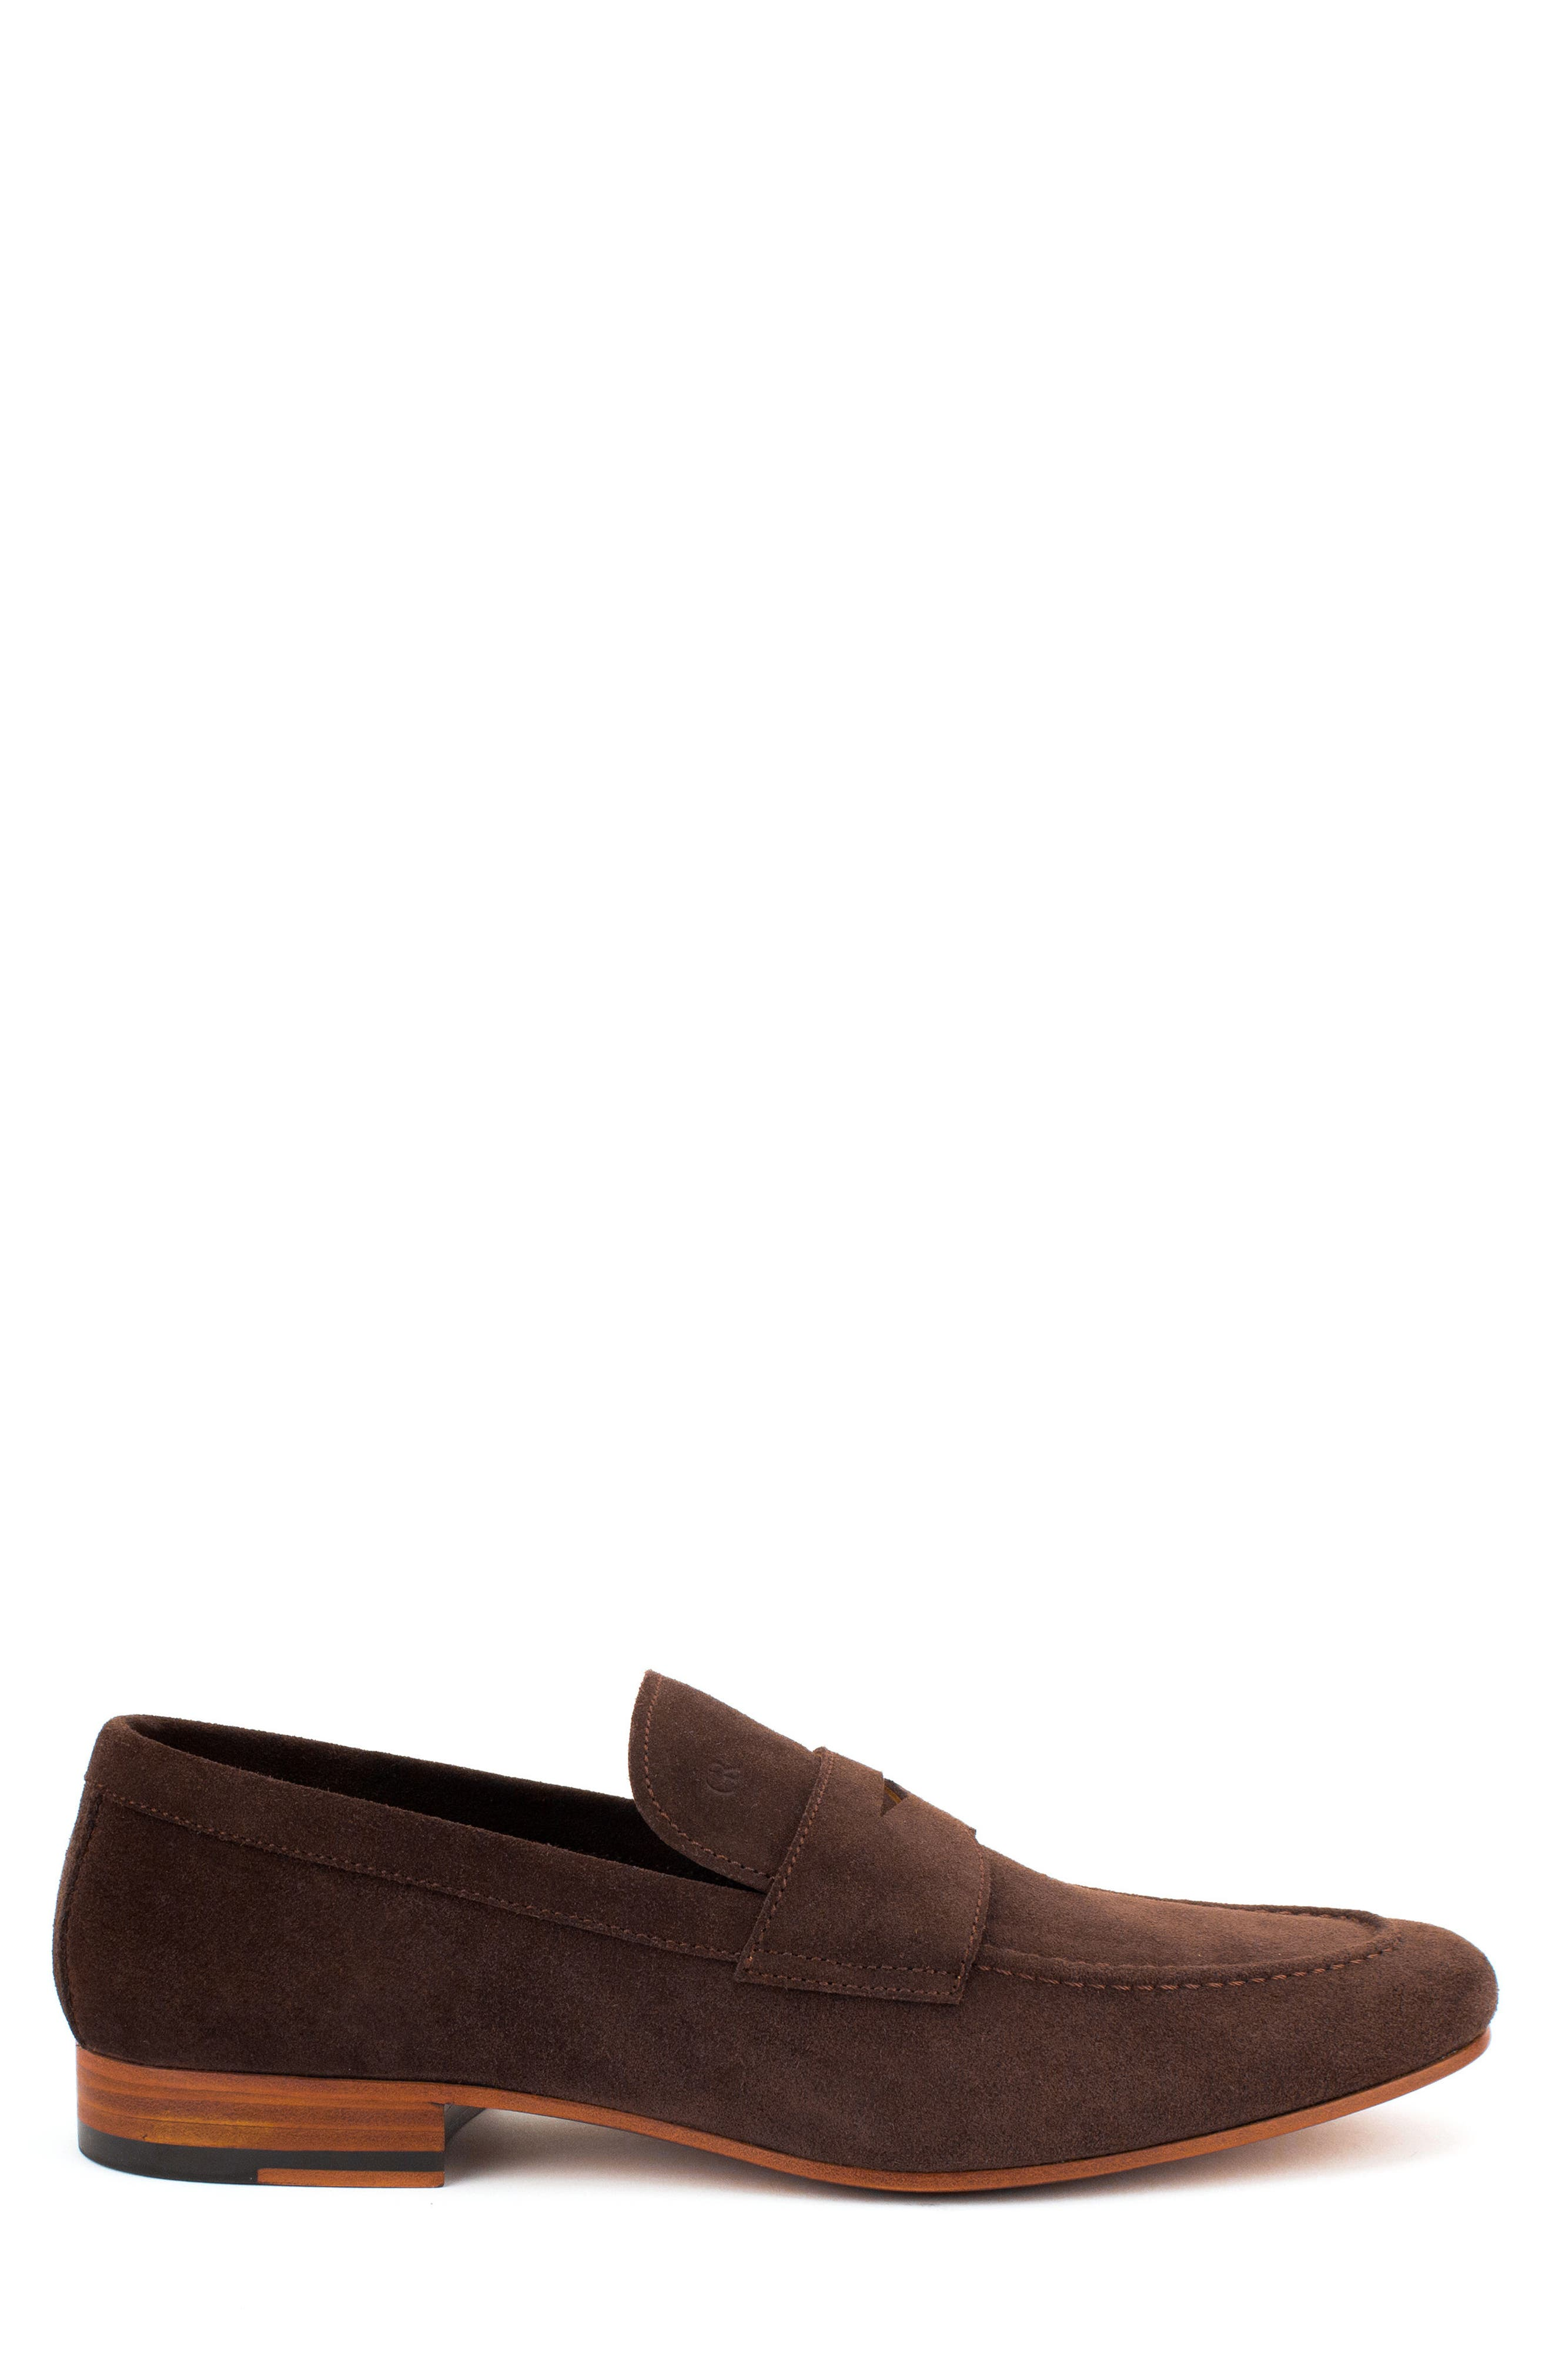 Wilfred Penny Loafer,                             Alternate thumbnail 3, color,                             206